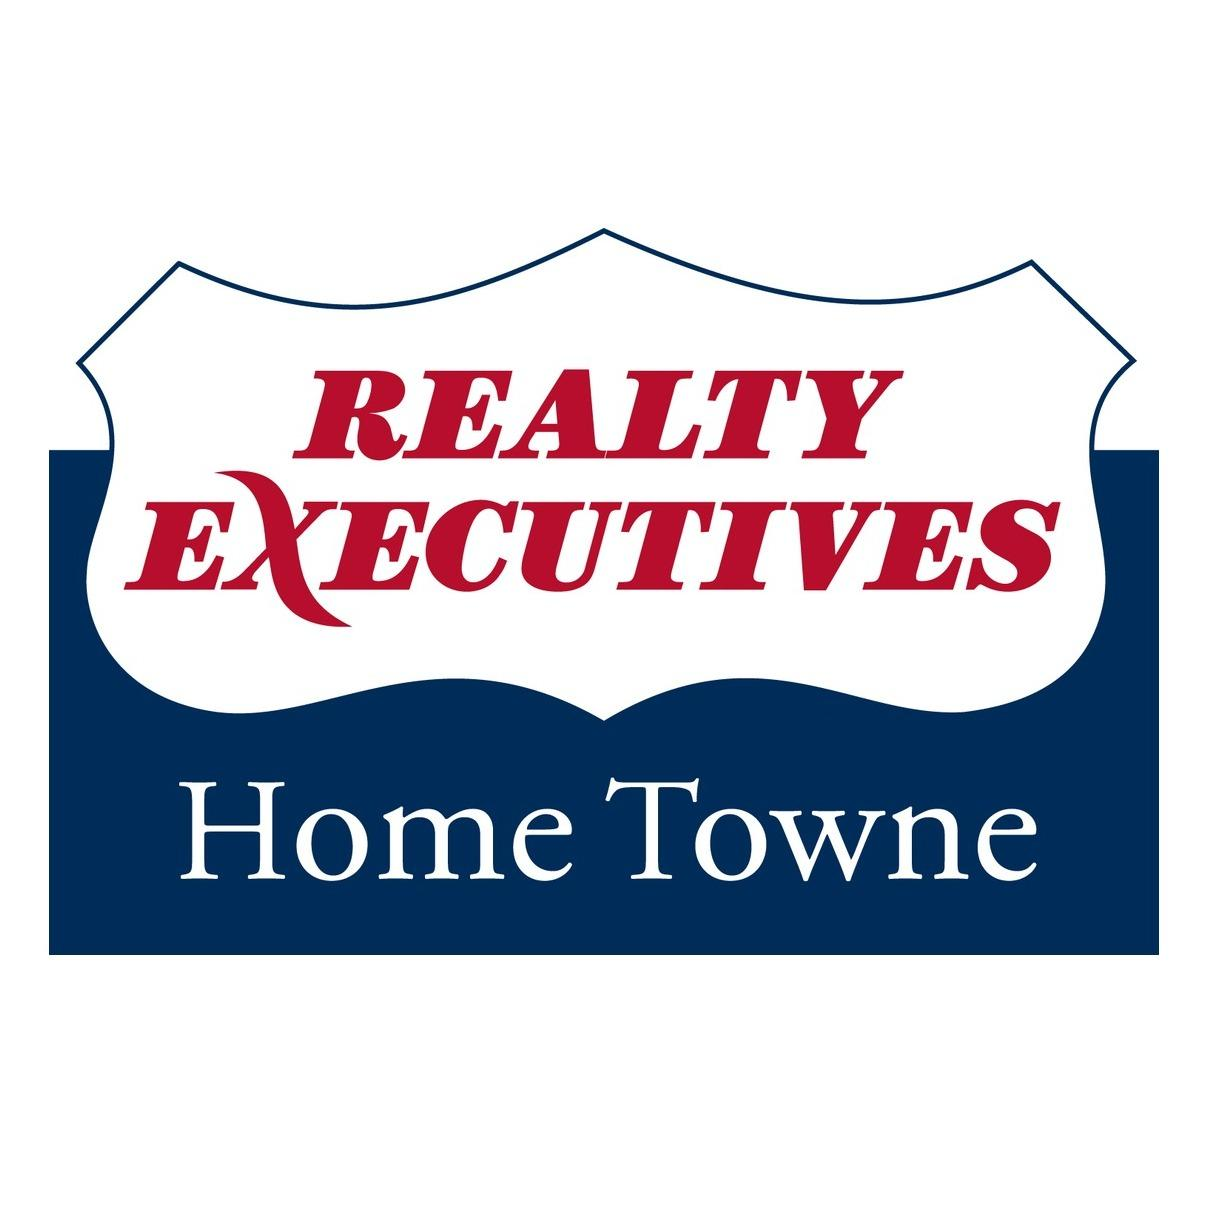 Joanne Sisson | Realty Executives Home Towne